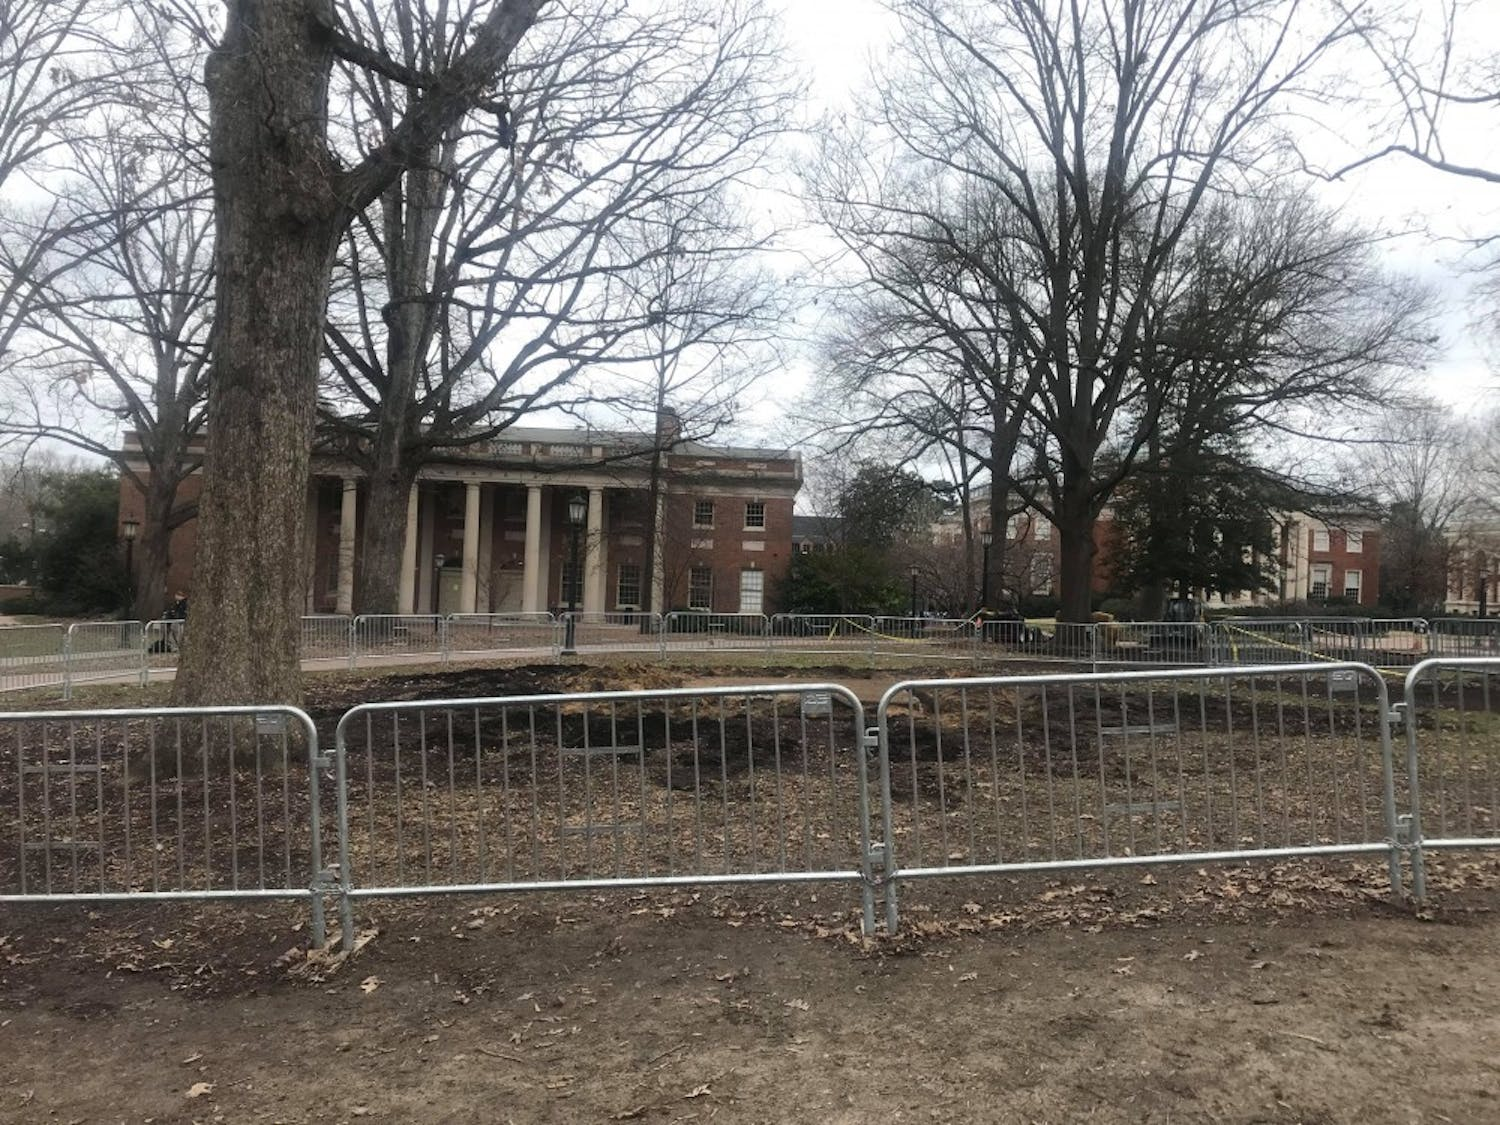 Silent Sam's base was pulled down overnight at UNC.